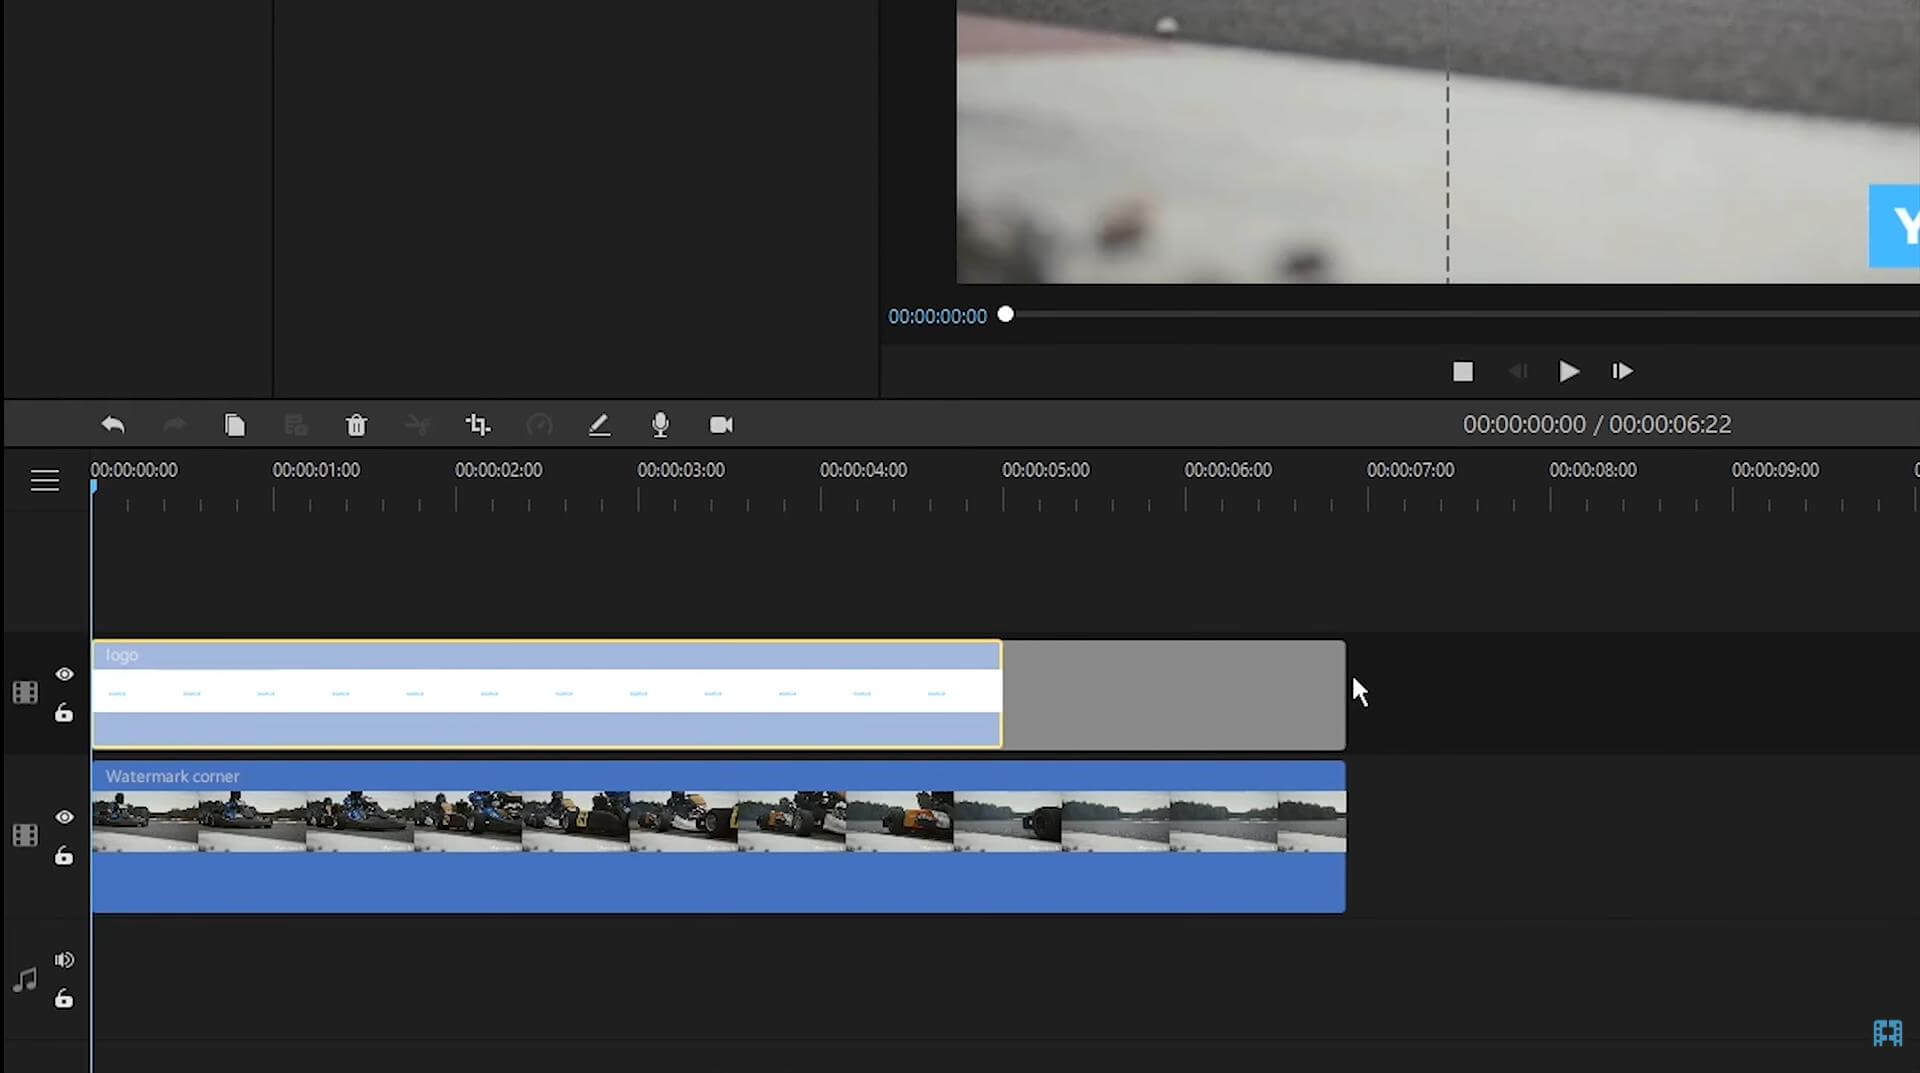 bring the video or image to the timeline to overlay watermark